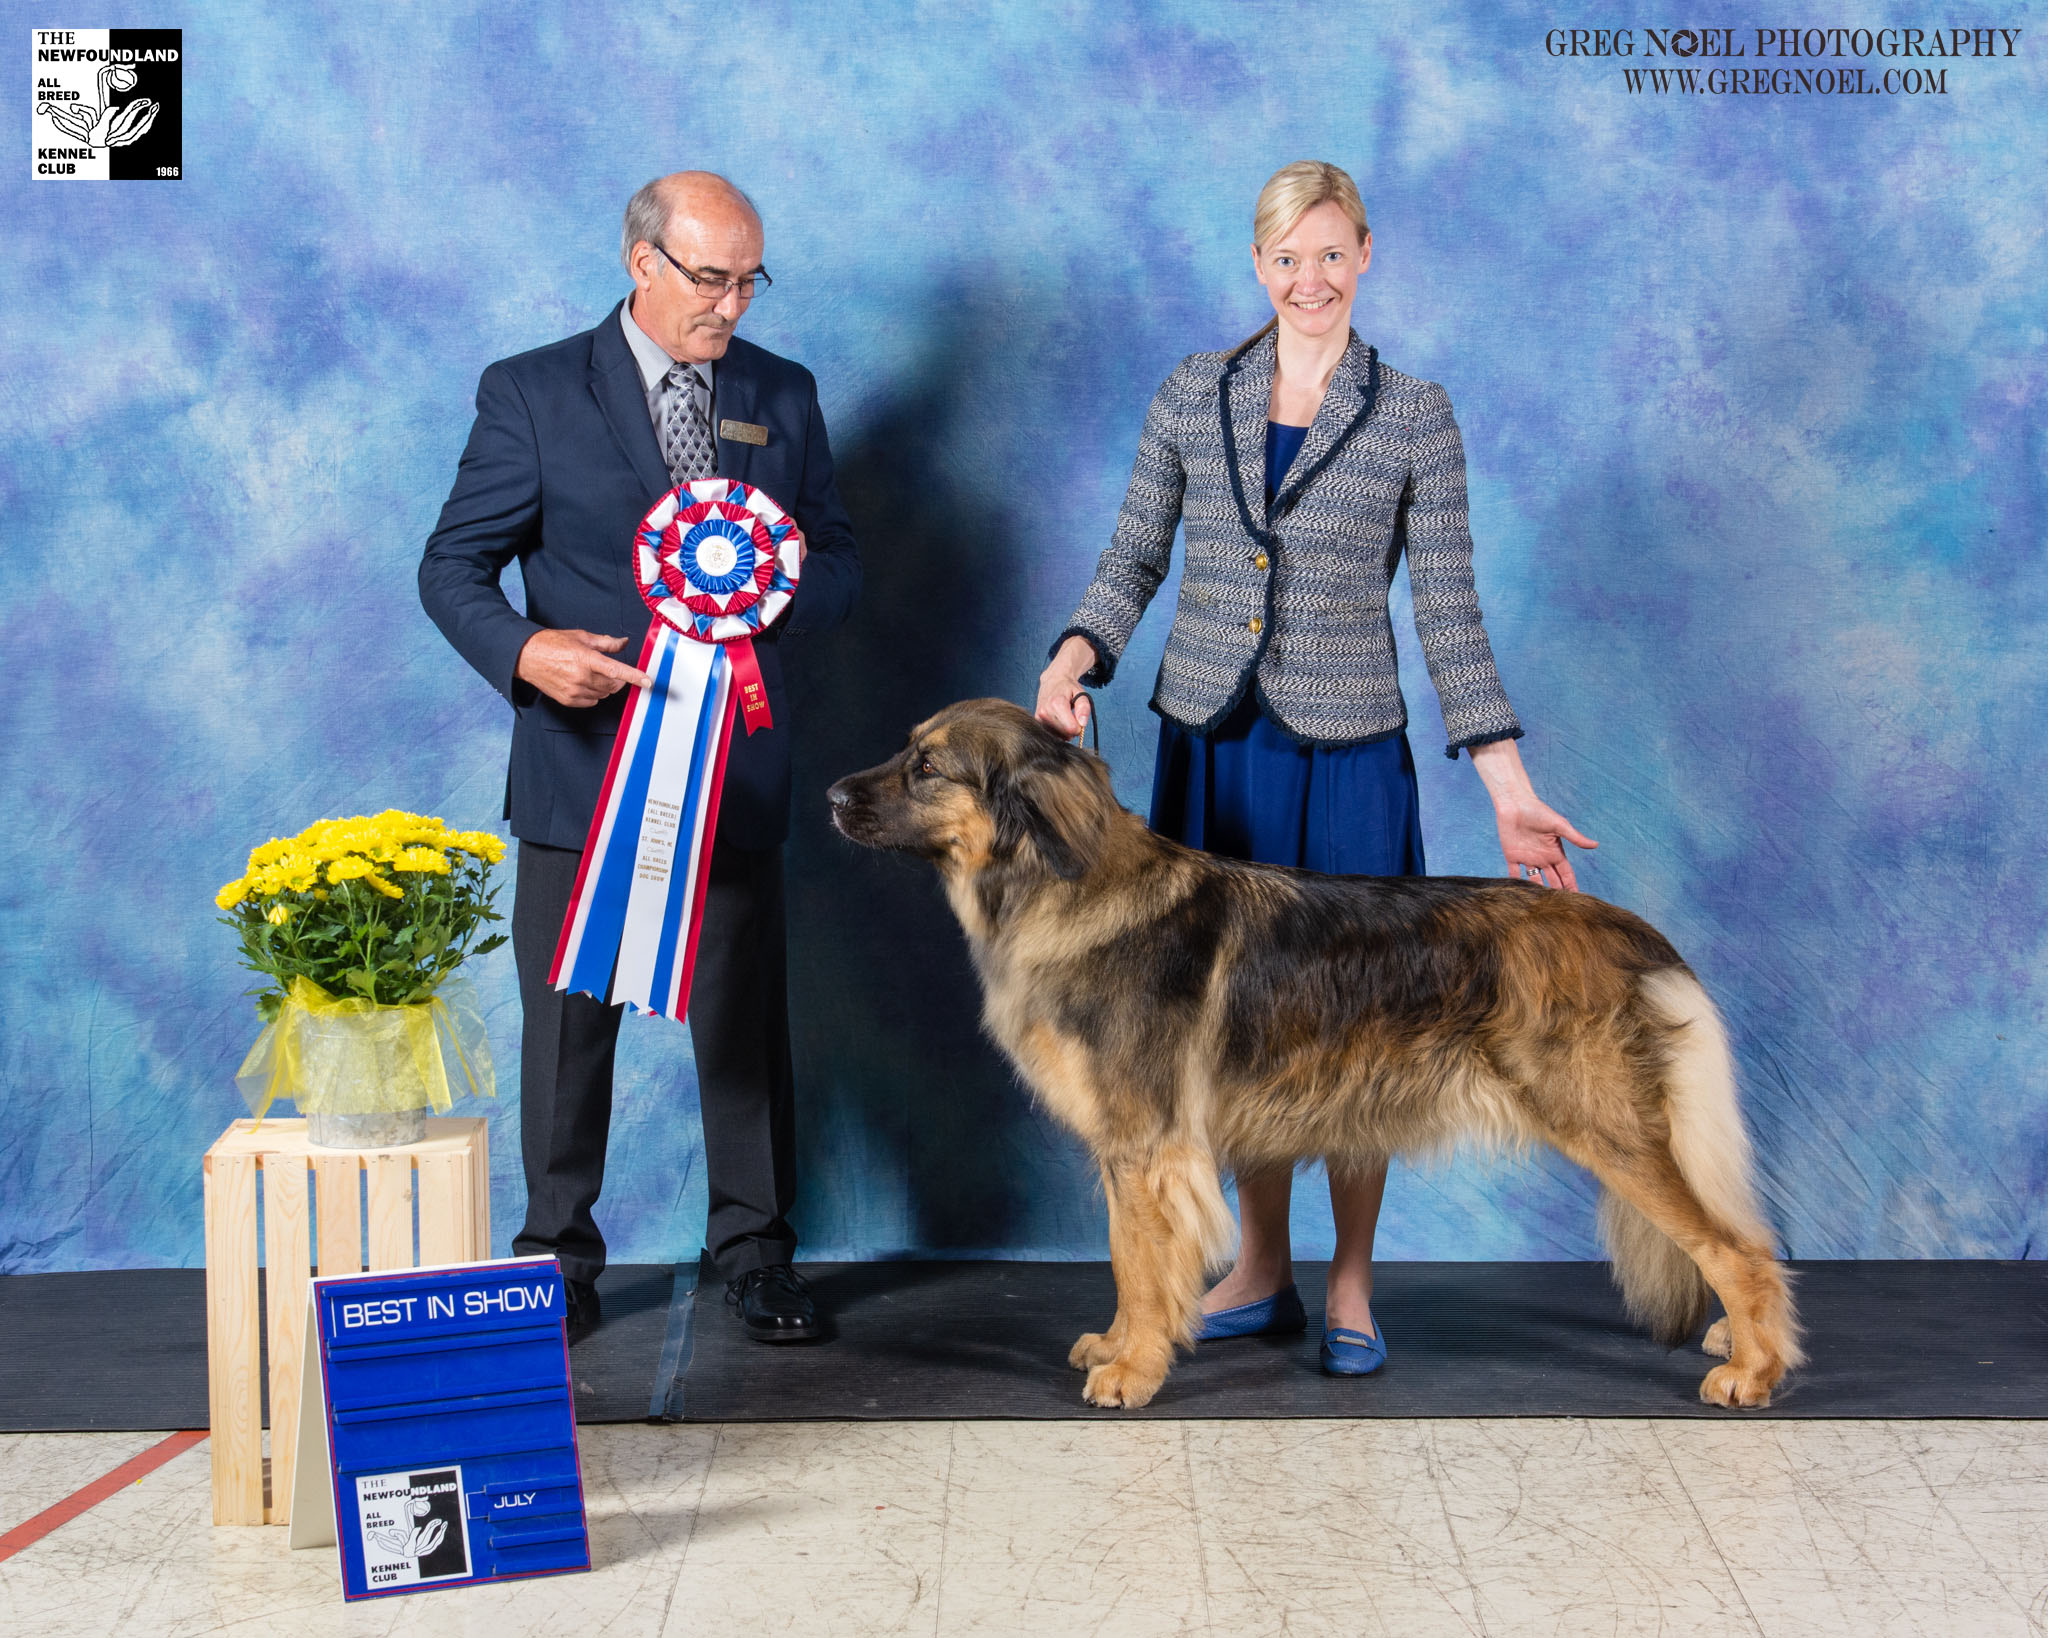 Newfoundland All Breed Kennel Club Dog ShowJuly 2019 Booth Photos - Personal use digital downloads $40 each or free with valid coupon codeCommercial Licence for breeders/businesses/advertising $60 per imagePrints also available